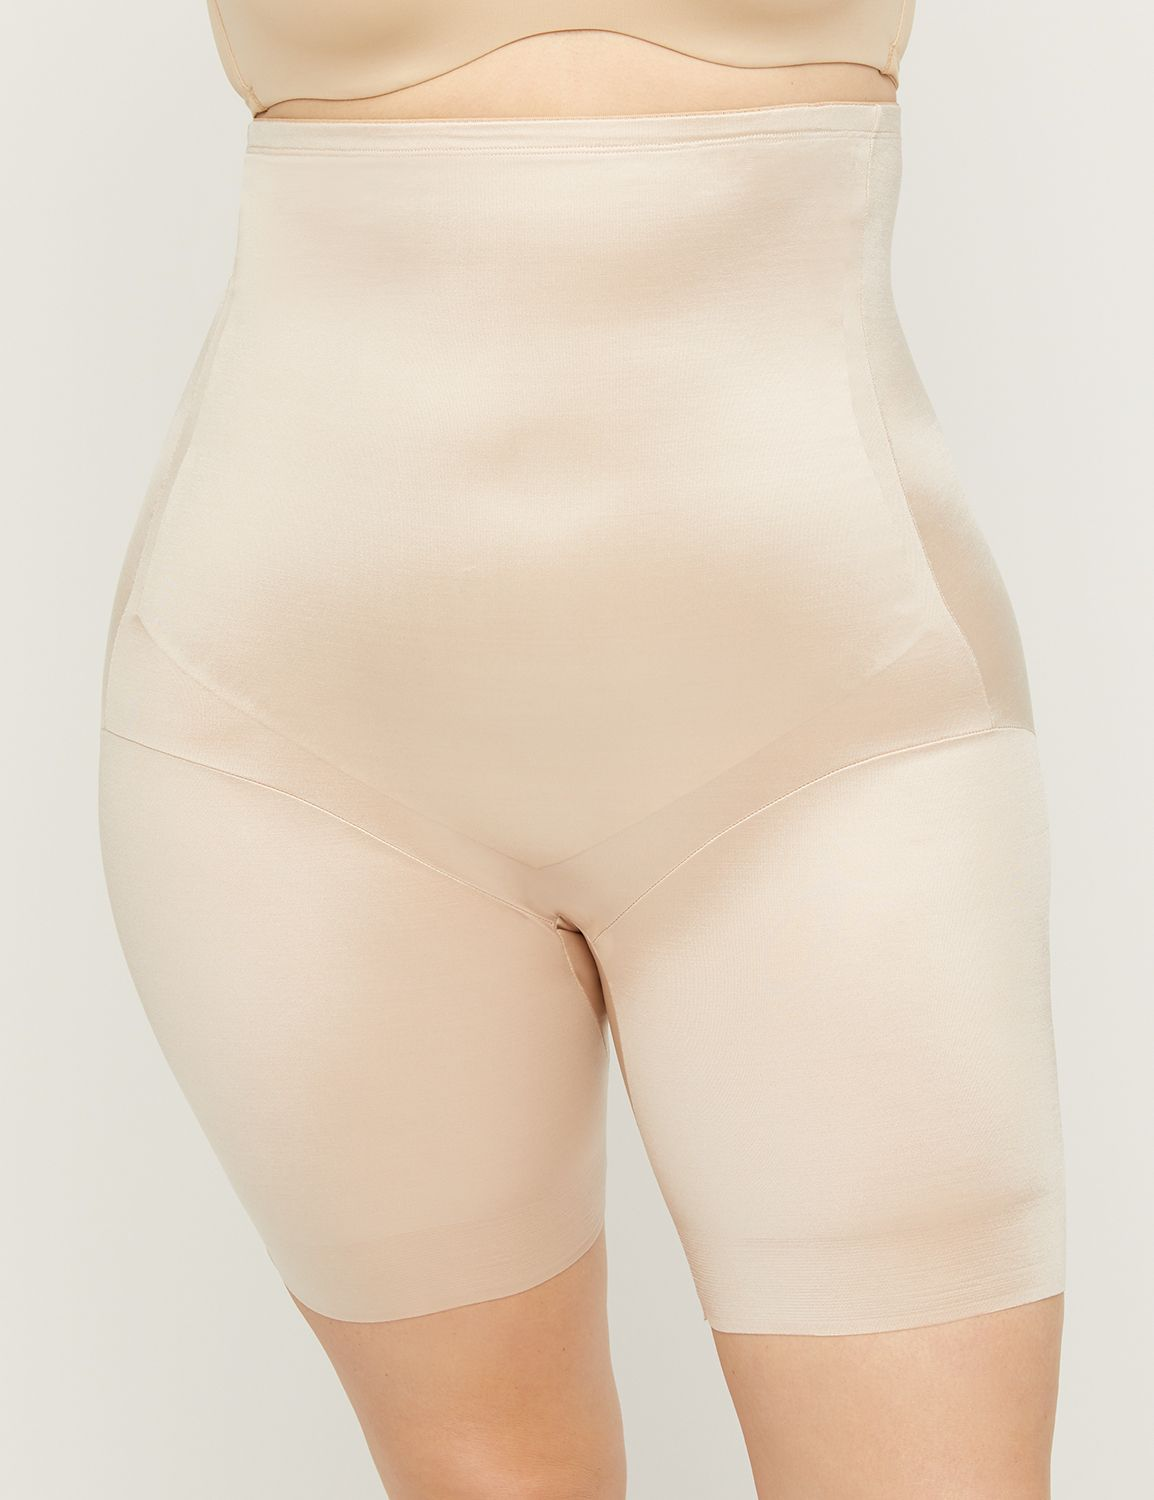 05168f6c8 Plus Size Shapewear In Various Styles